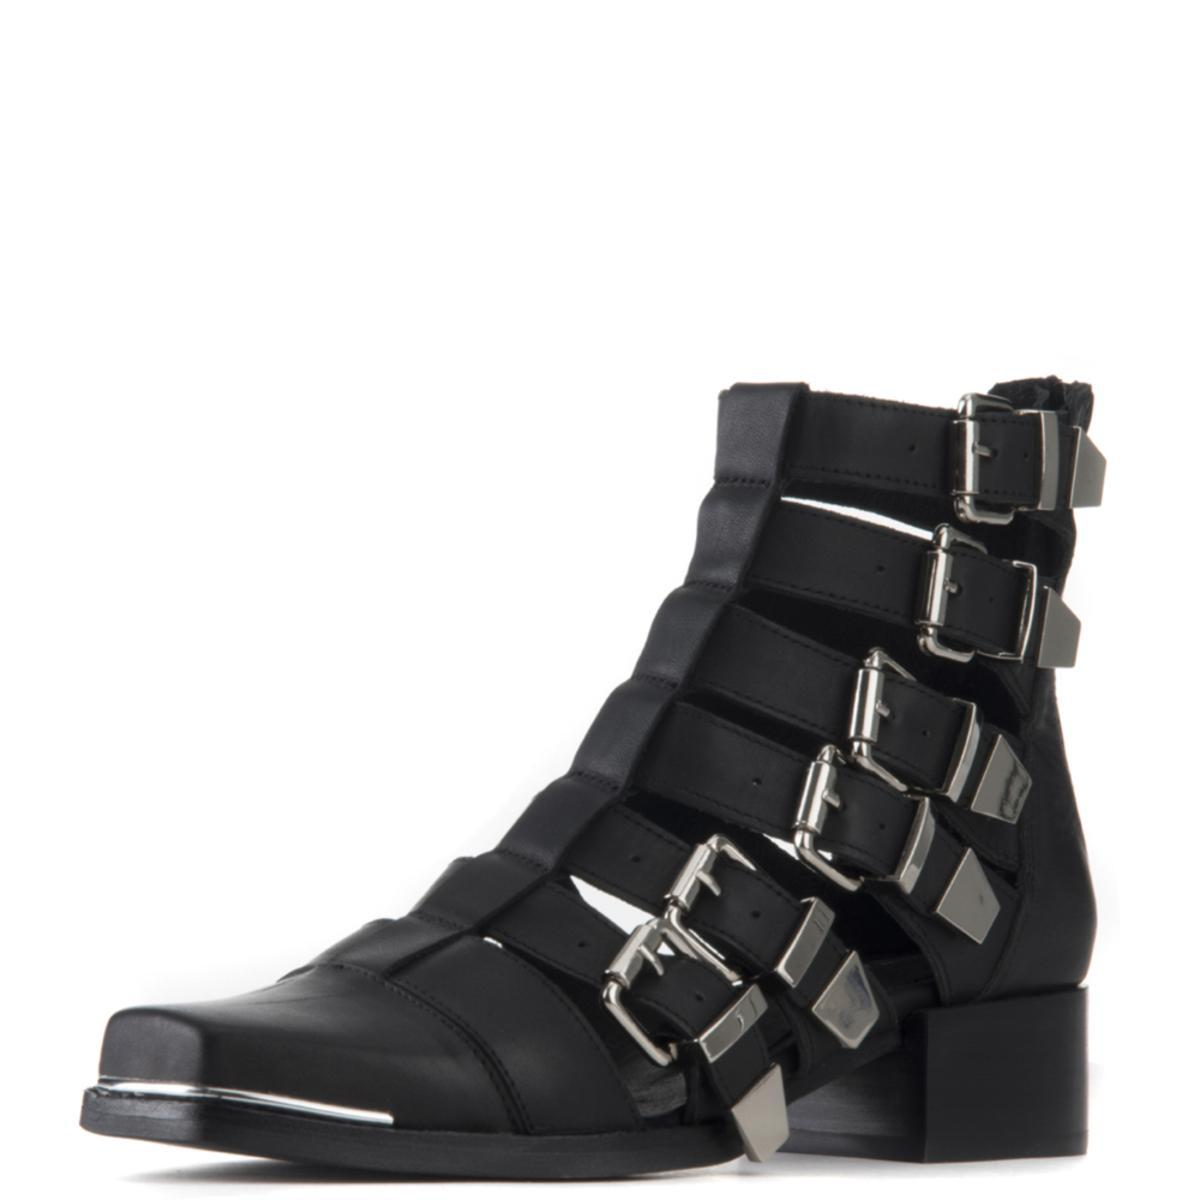 Jeffrey Campbell for Women: Destructa Black Heel Booties